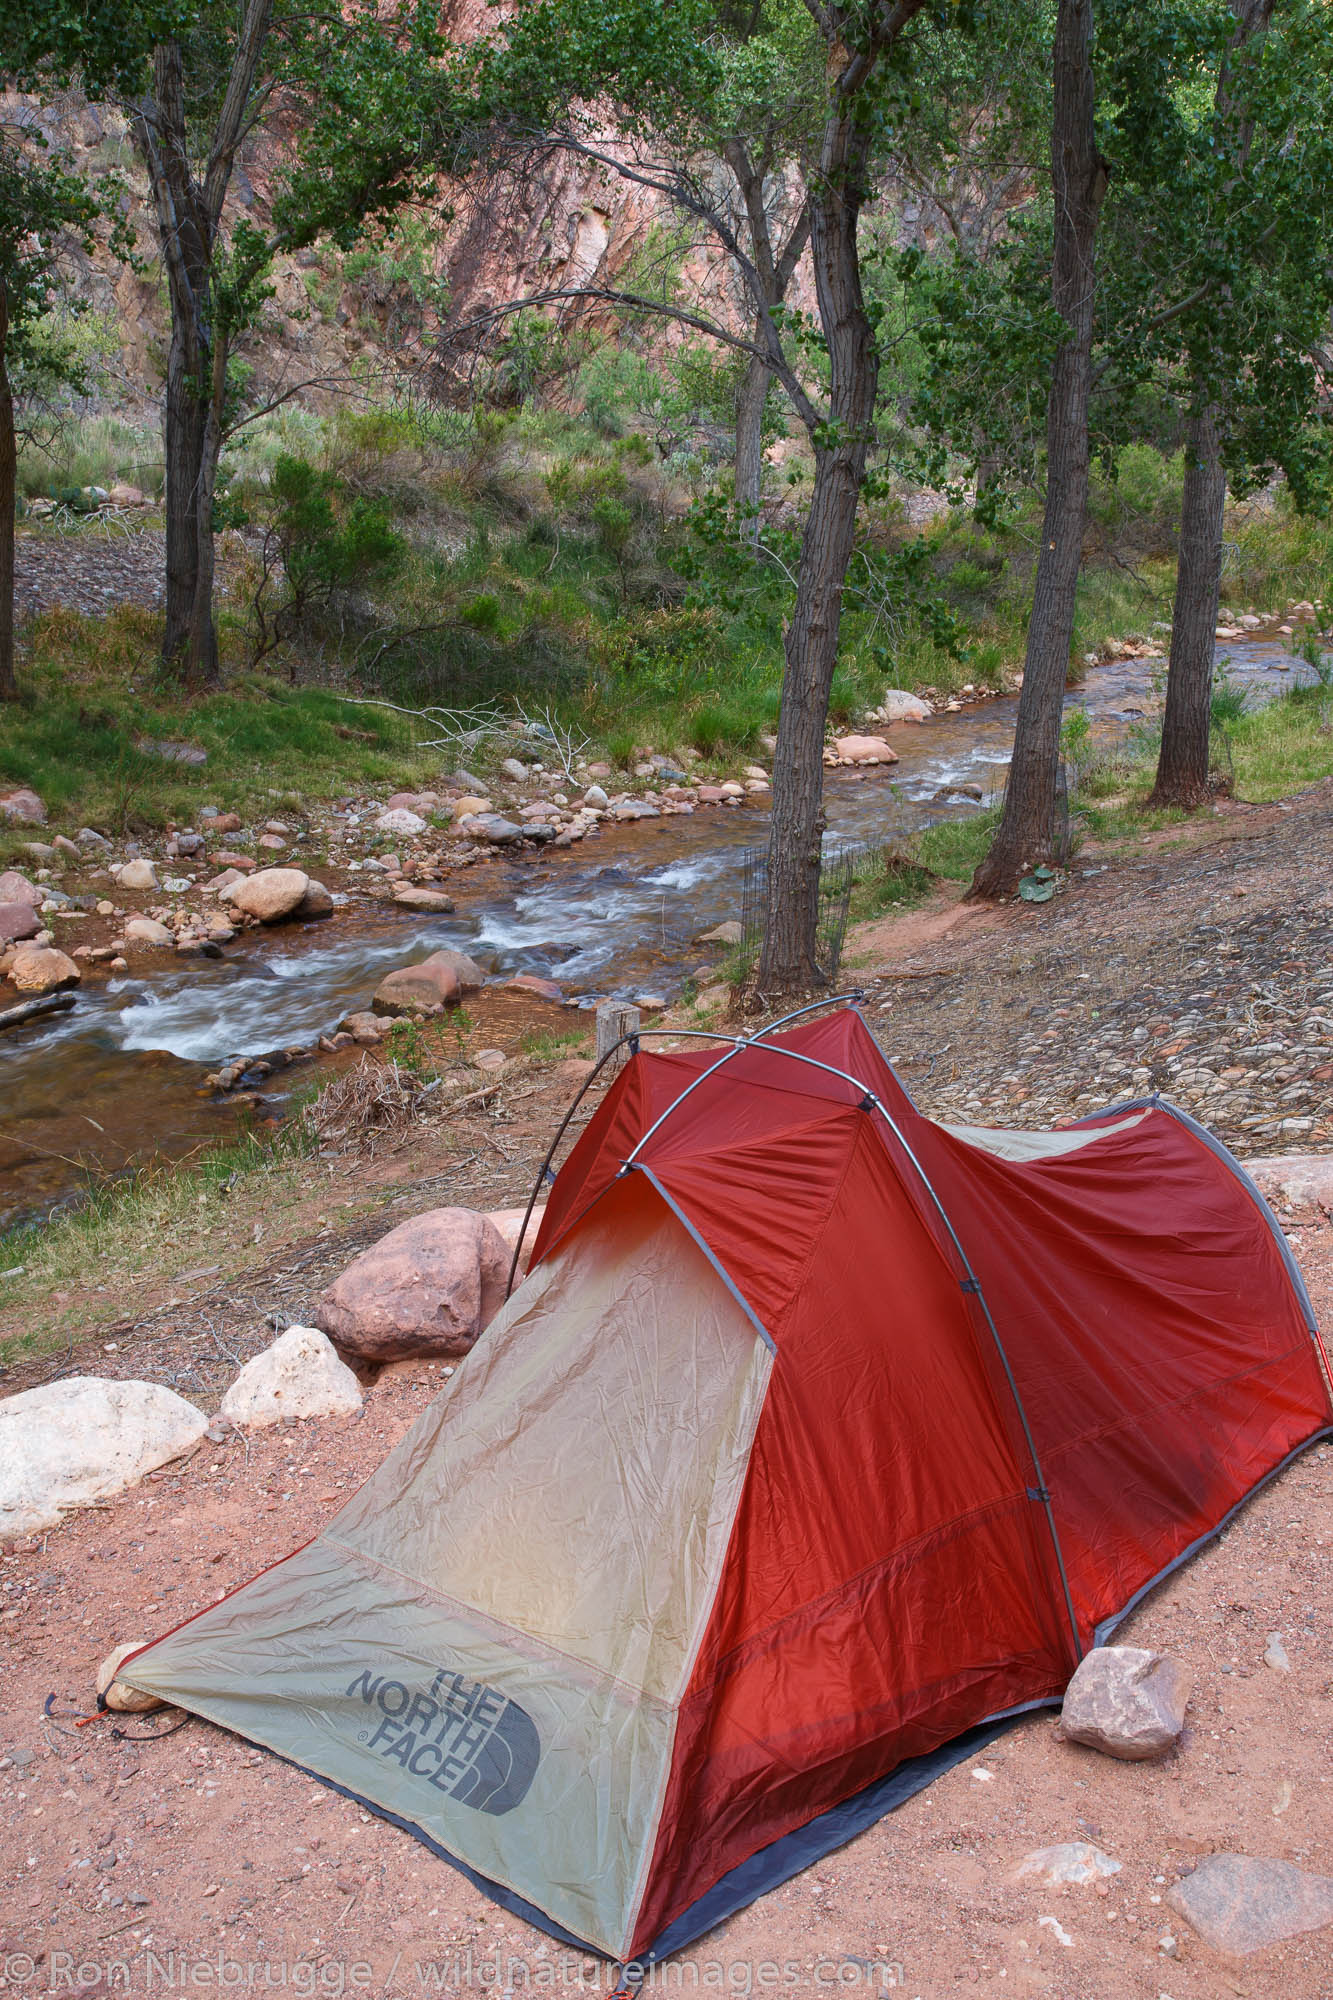 Bright Angel creek and Campground and the end of the South Kaibab Trail, Grand Canyon National Park, Arizona.